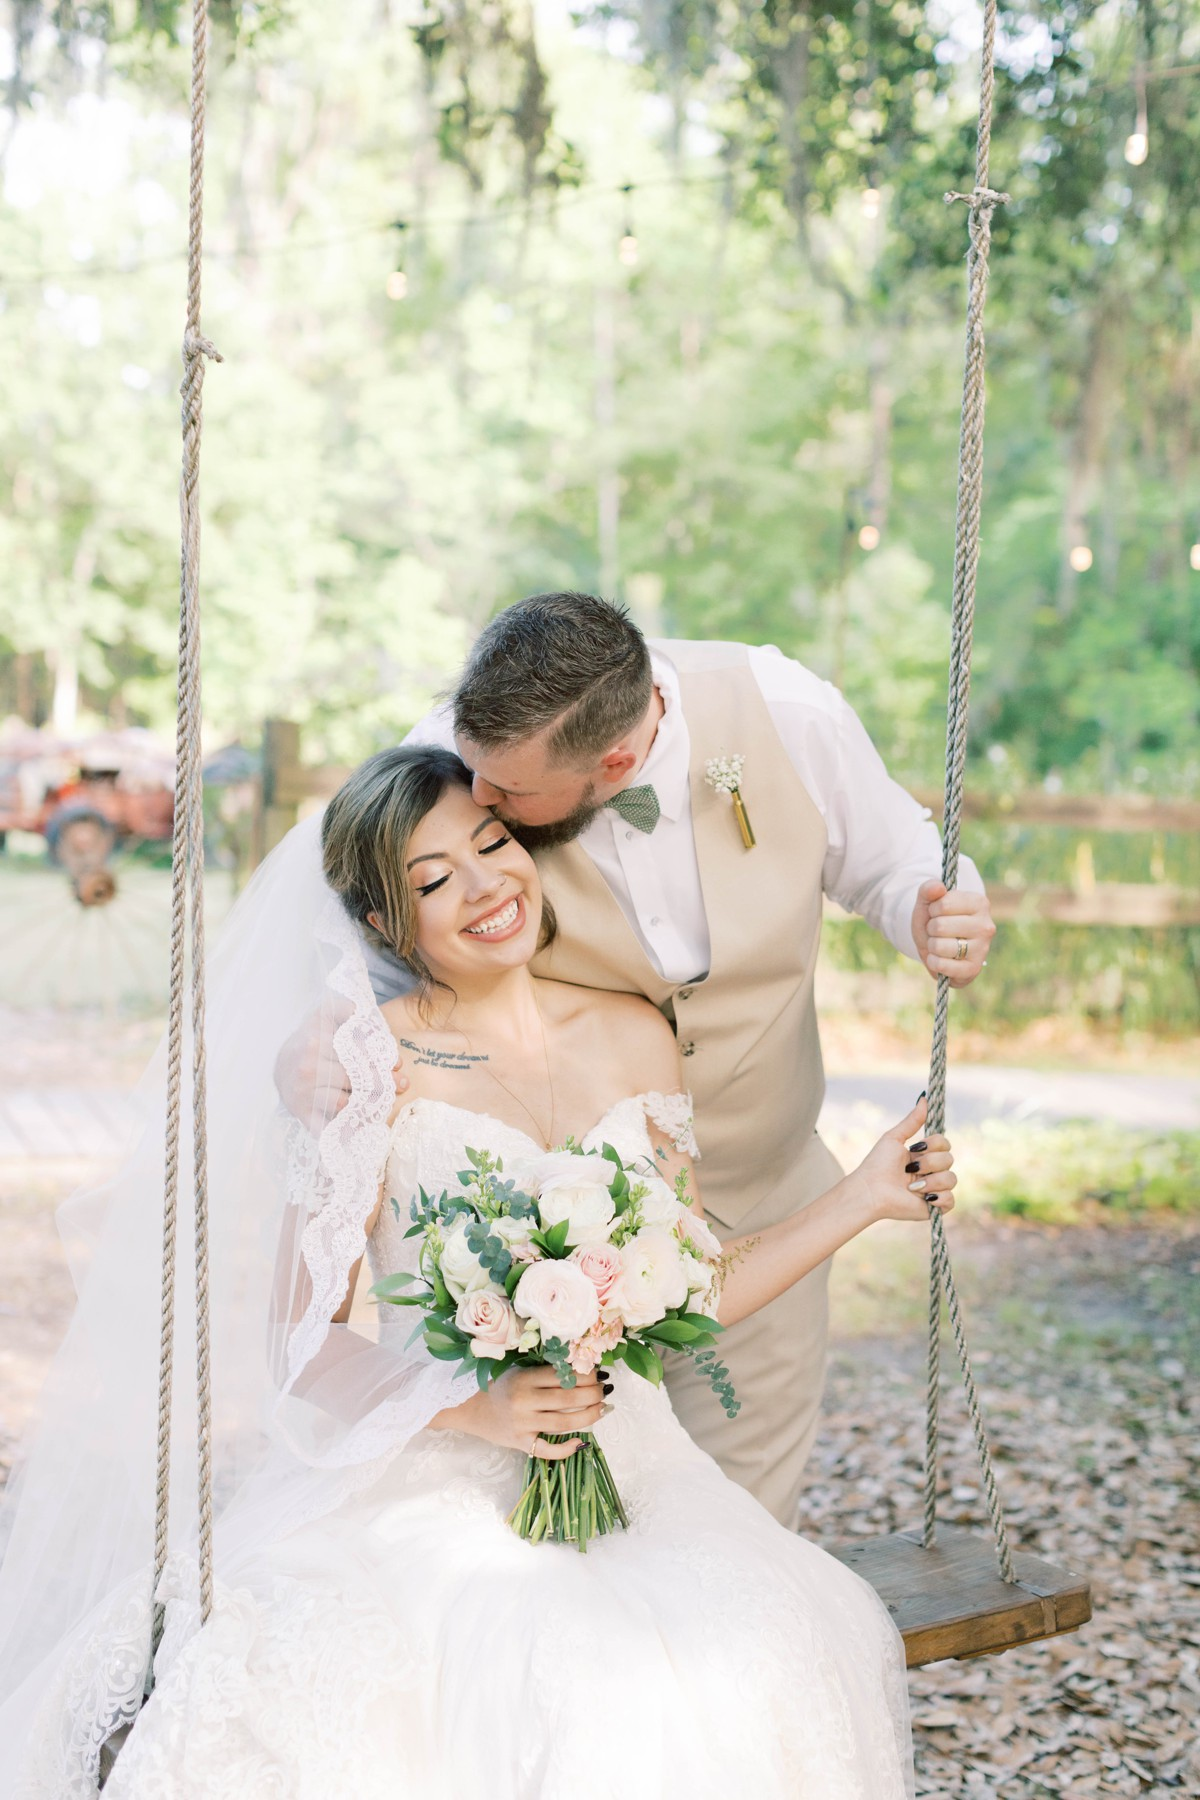 Bressler-Wedding-Preview-Tuckers-Farmhouse-Jacksonville-Wedding-Photographer-Chantell-Rae048.jpg